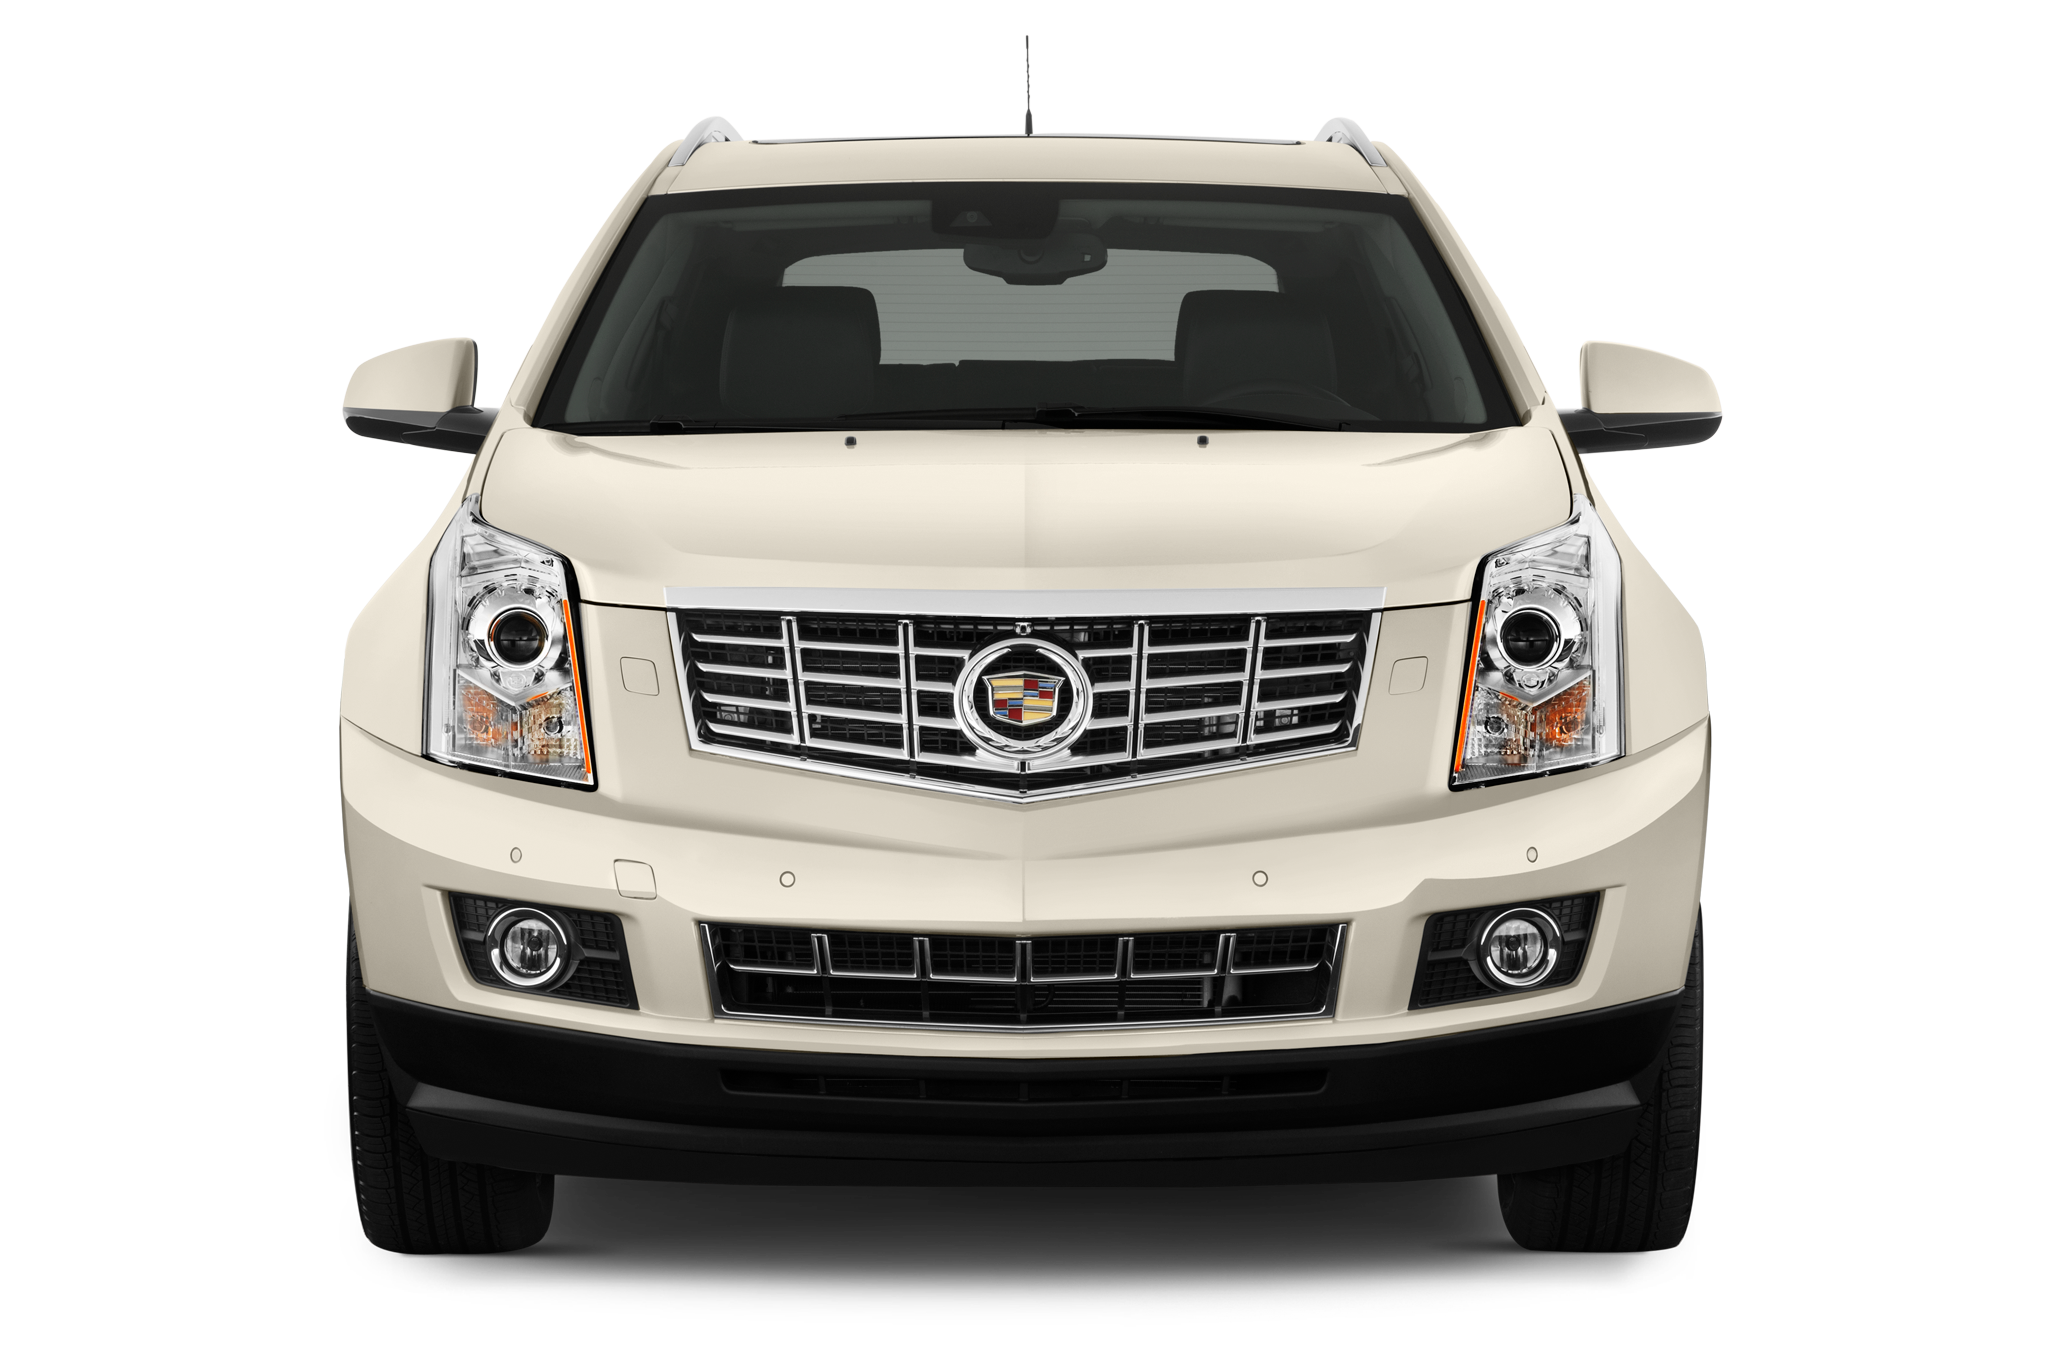 dune cadillac interior luxury i pure pin cocoa because wanted srx